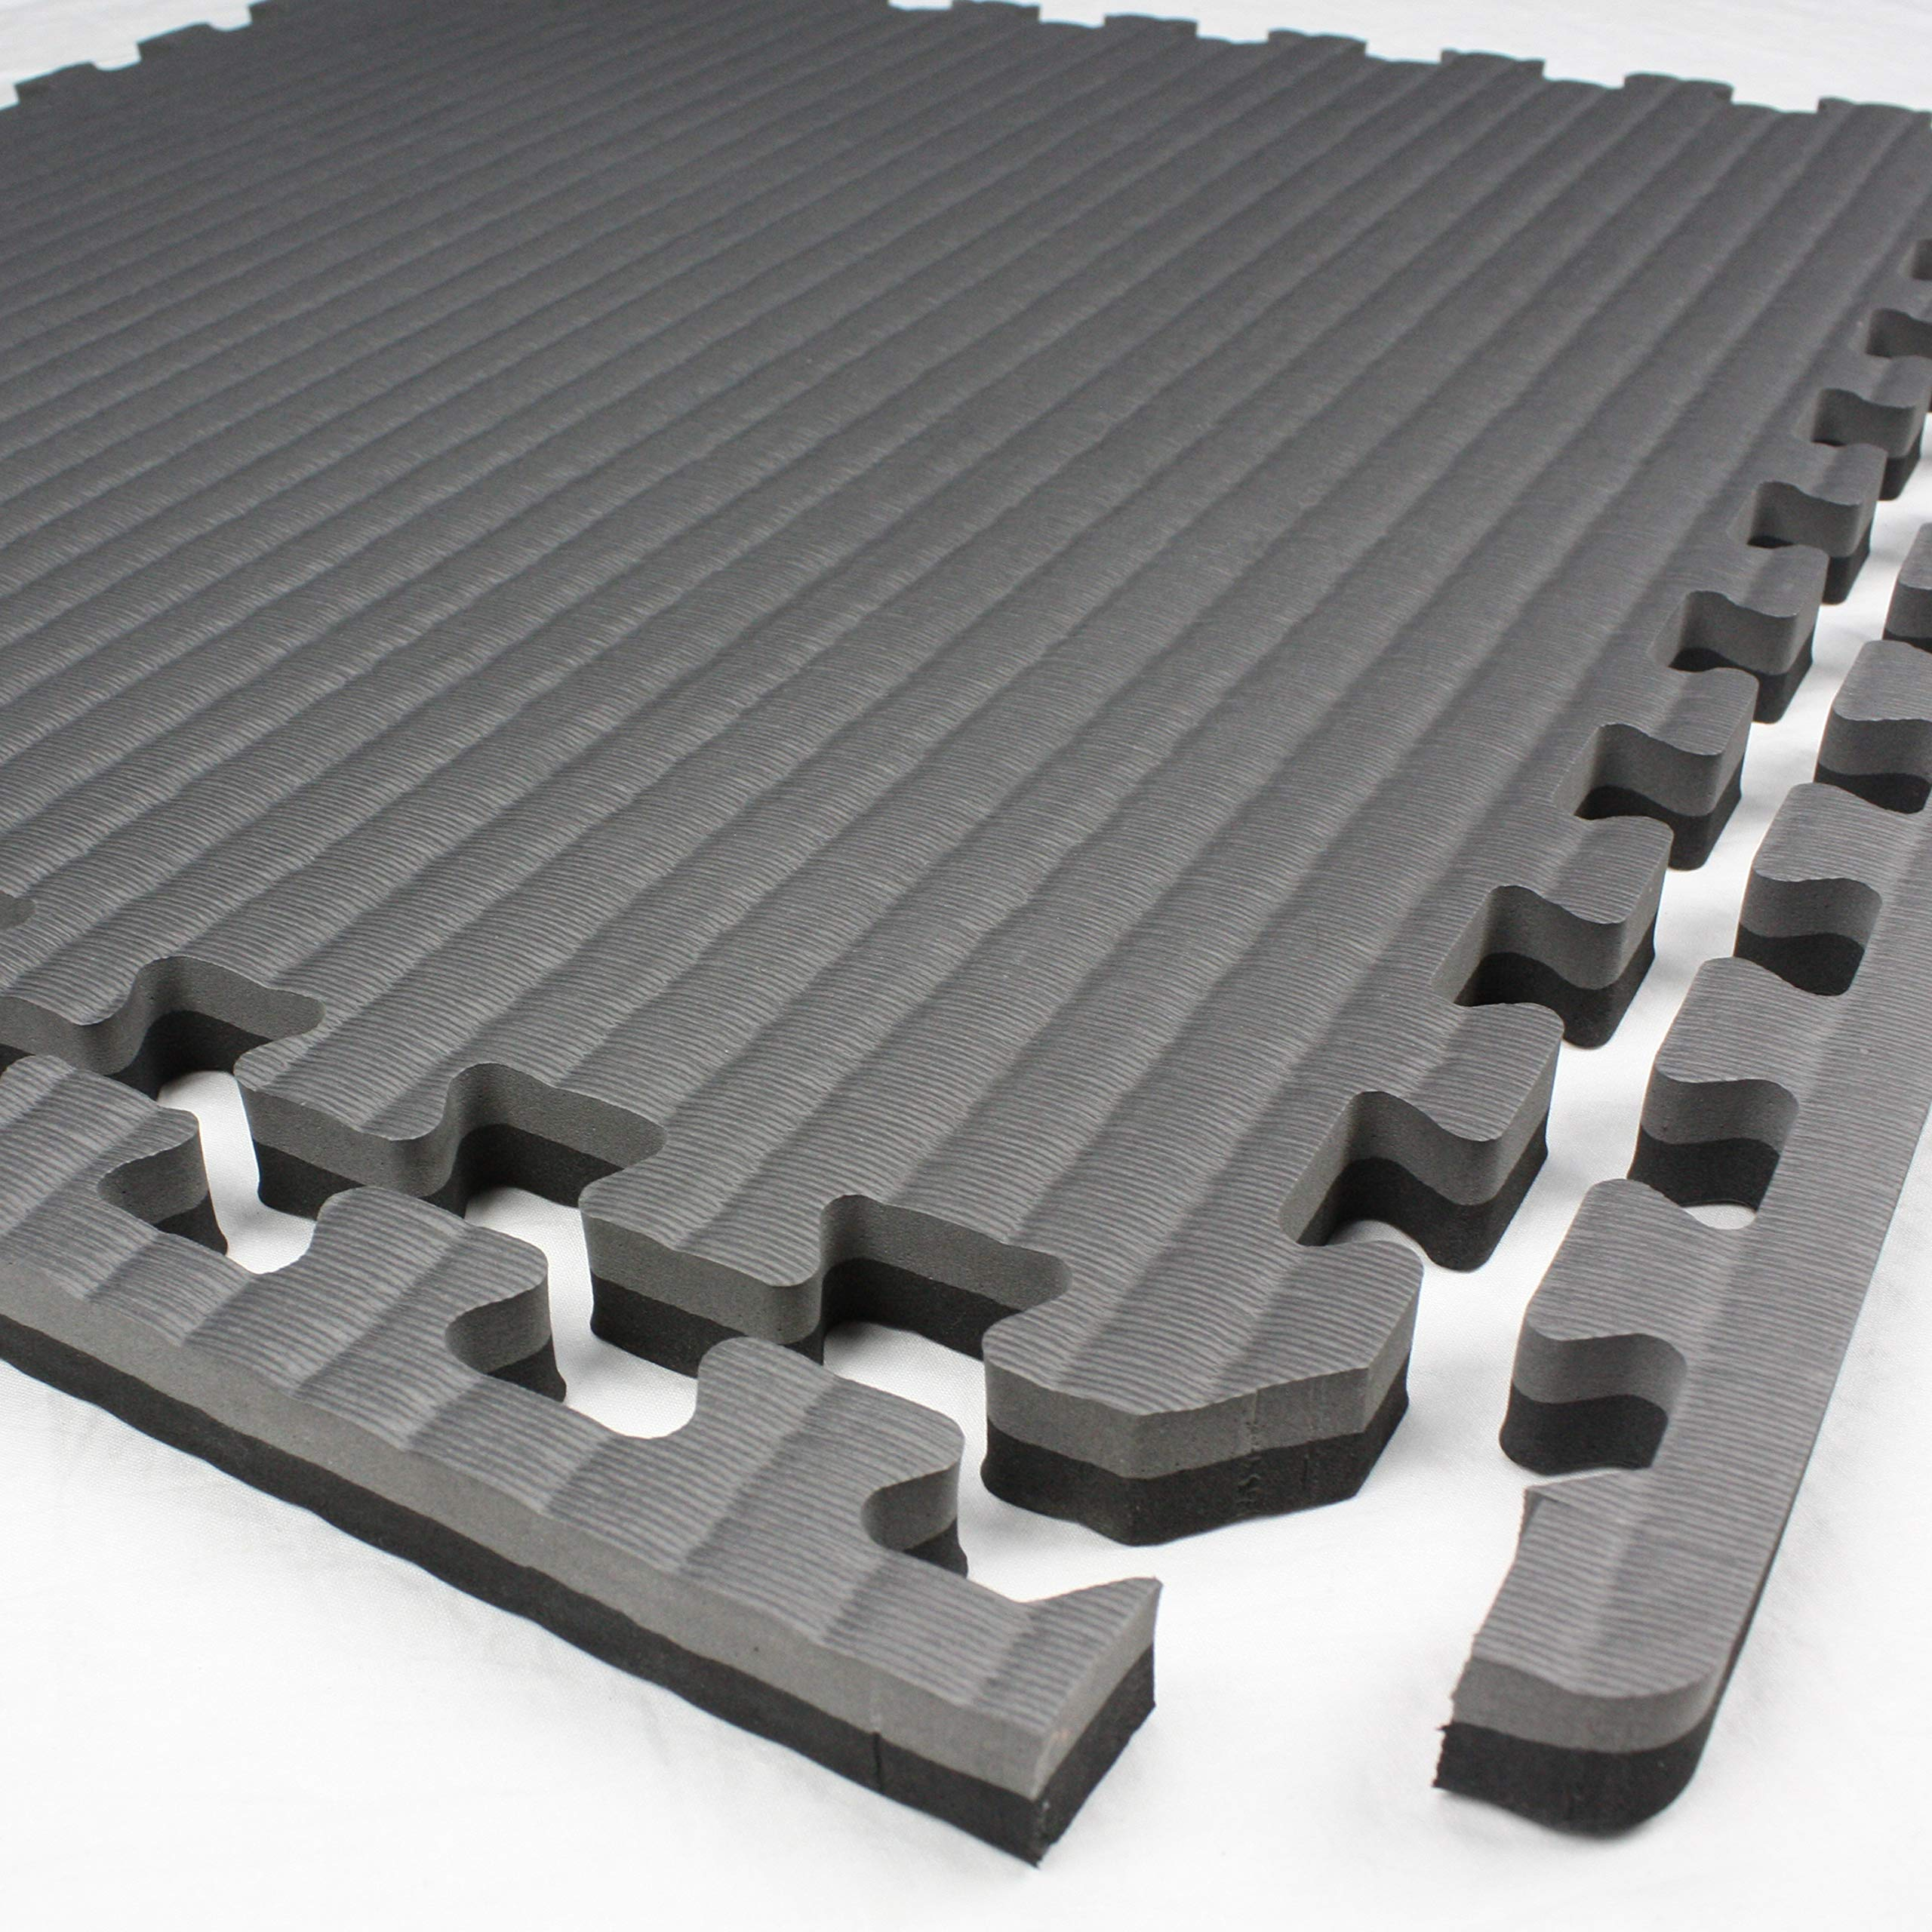 IncStores - Tatami Foam Tiles - Extra Thick mats Perfect for Martial Arts, MMA, Lightweight Home Gyms, p90x, Gymnastics, Yoga and Cardio (Black/Grey, 16 (3'x3') Tiles, 144 Sqft + Borders) by IncStores (Image #4)